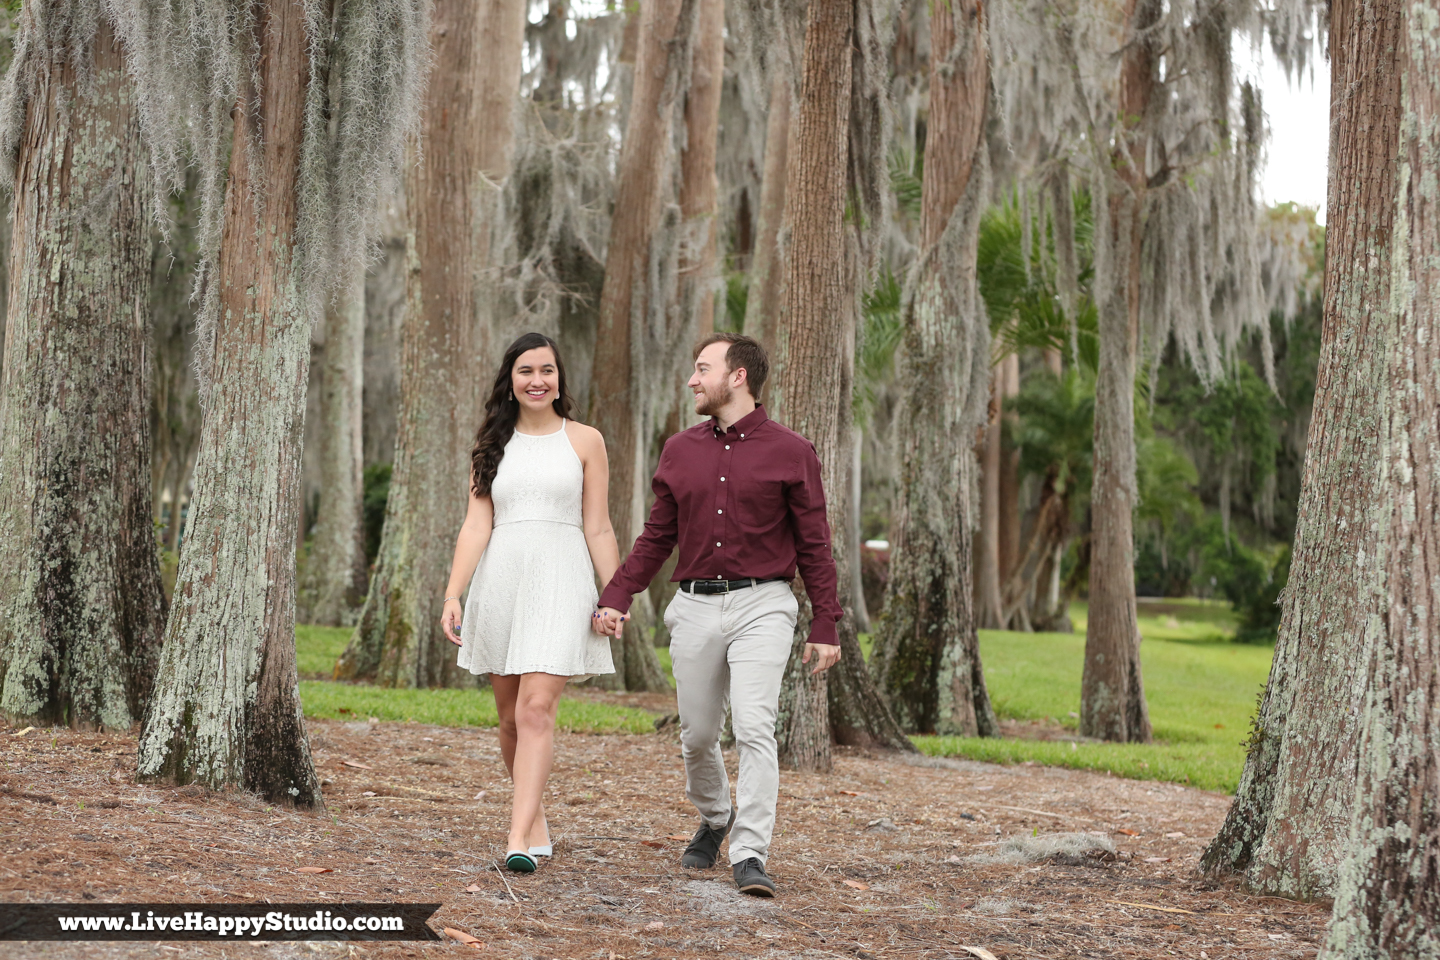 www.livehappystudio.com-cypress-grove-park-orlando-florida-engagement-photographer-candid-trees-moss-lake8.jpg